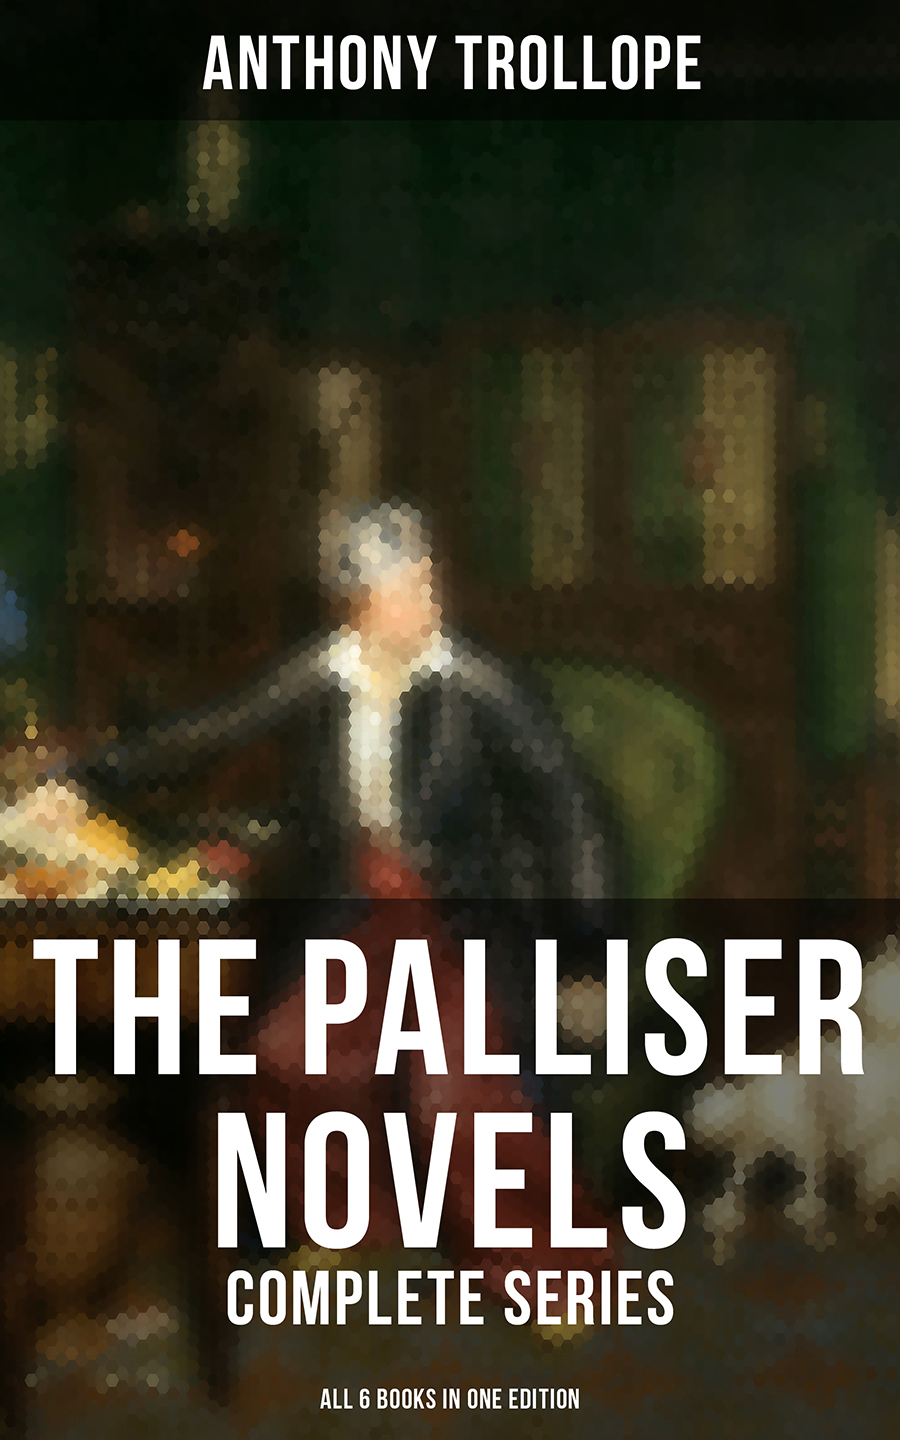 Anthony Trollope The Palliser Novels: Complete Series - All 6 Books in One Edition the summer i turned pretty complete series books 1 3